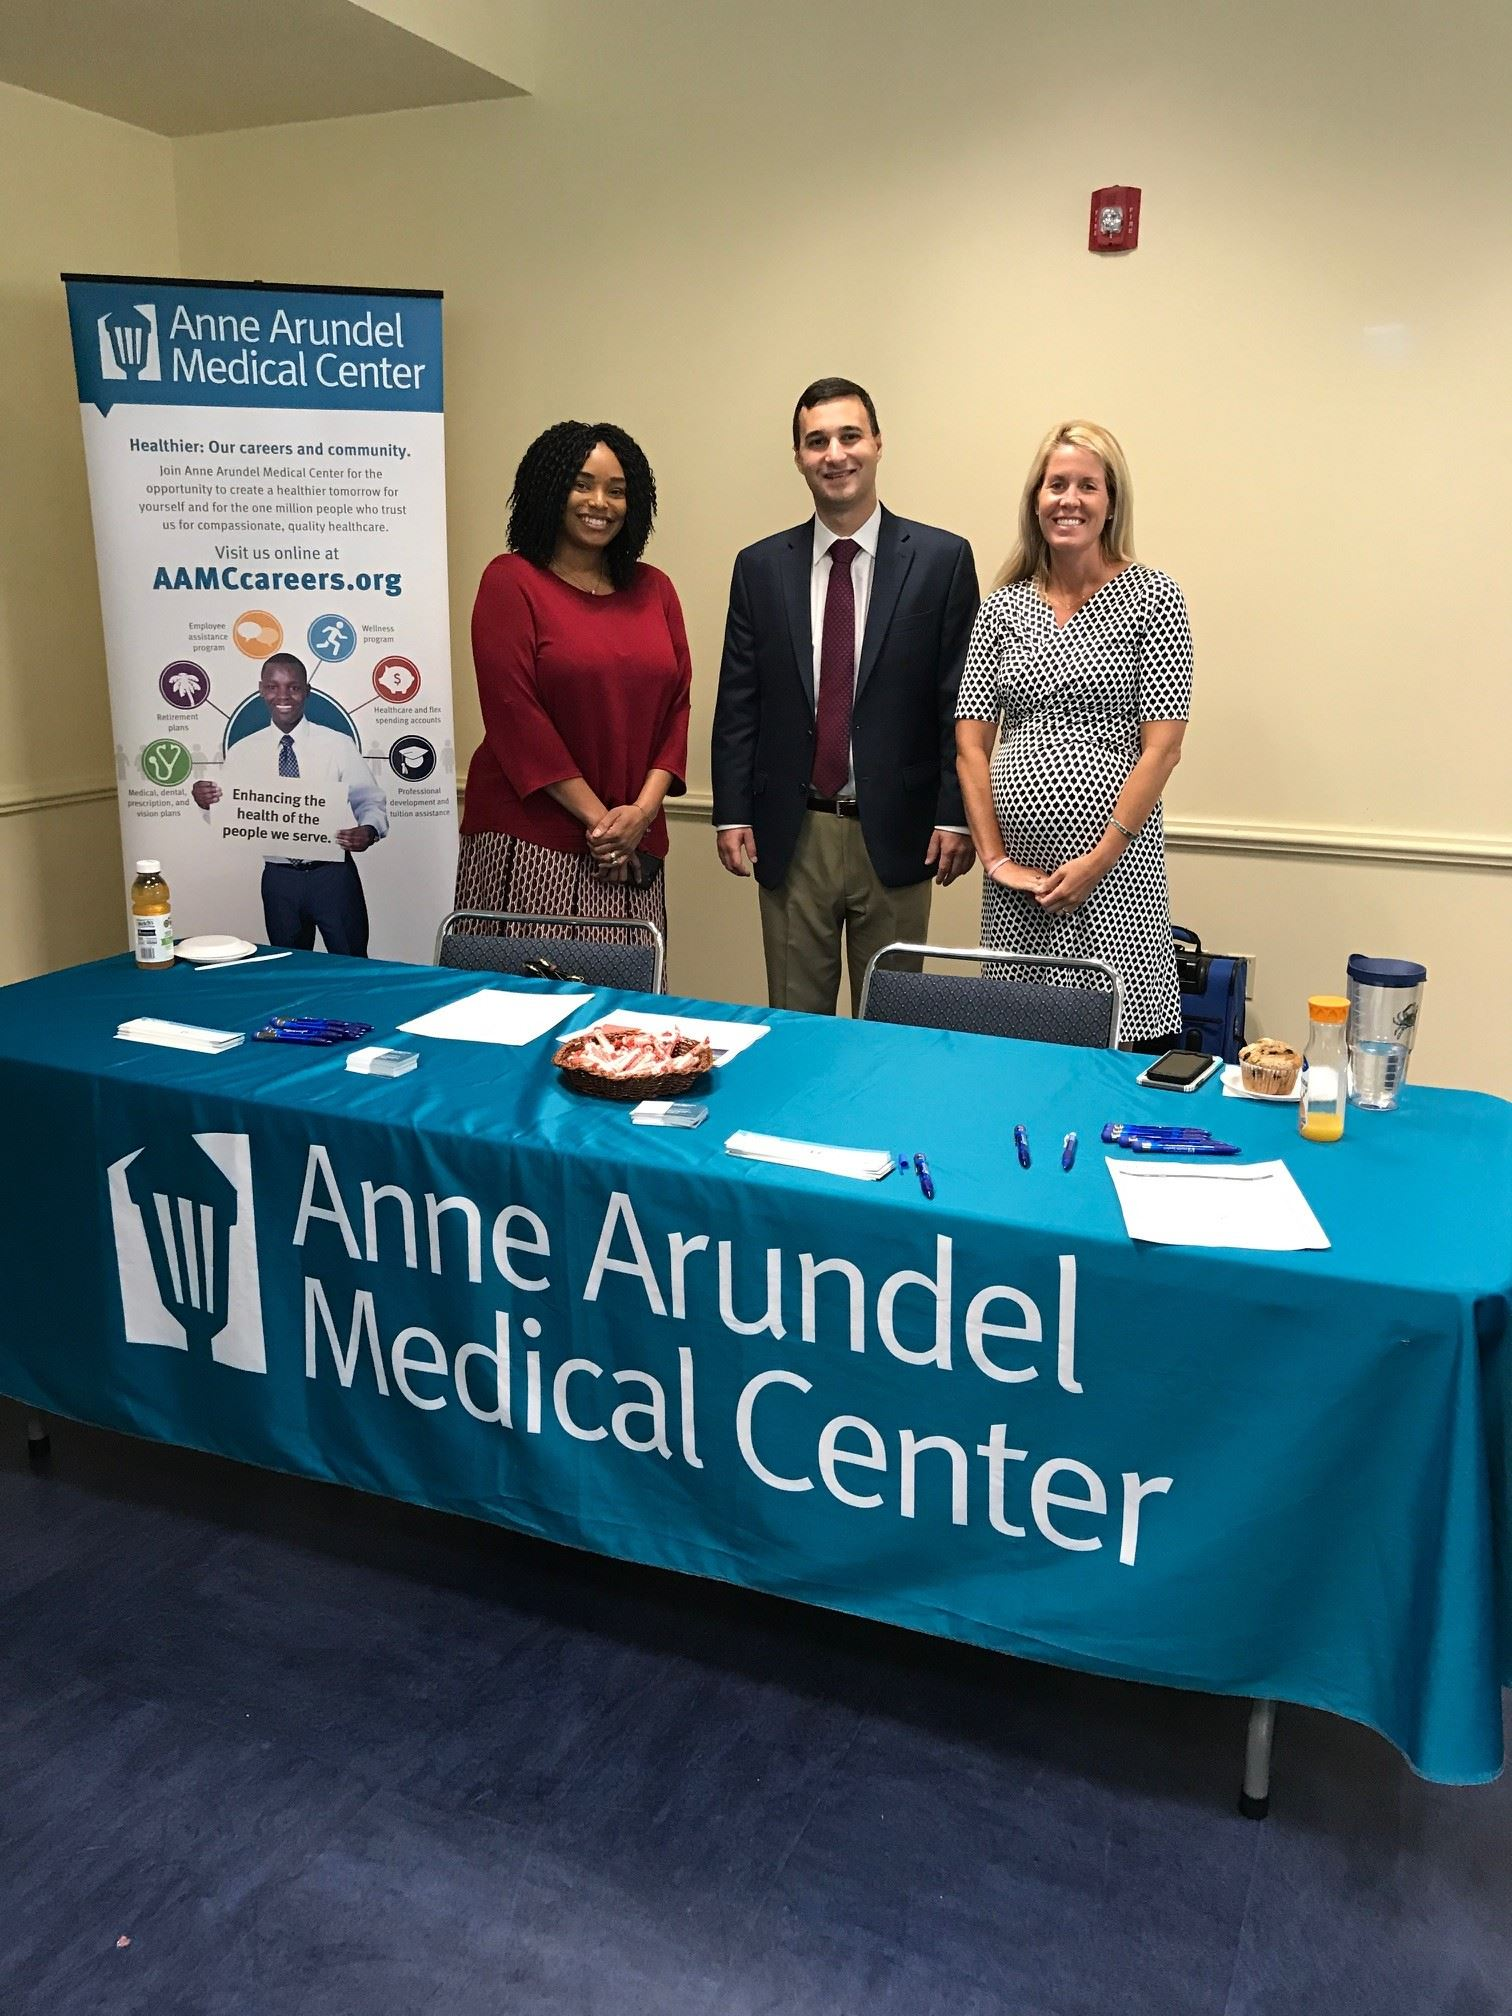 Mayor Pantelides with representatives of Anne Arundel Medical Center